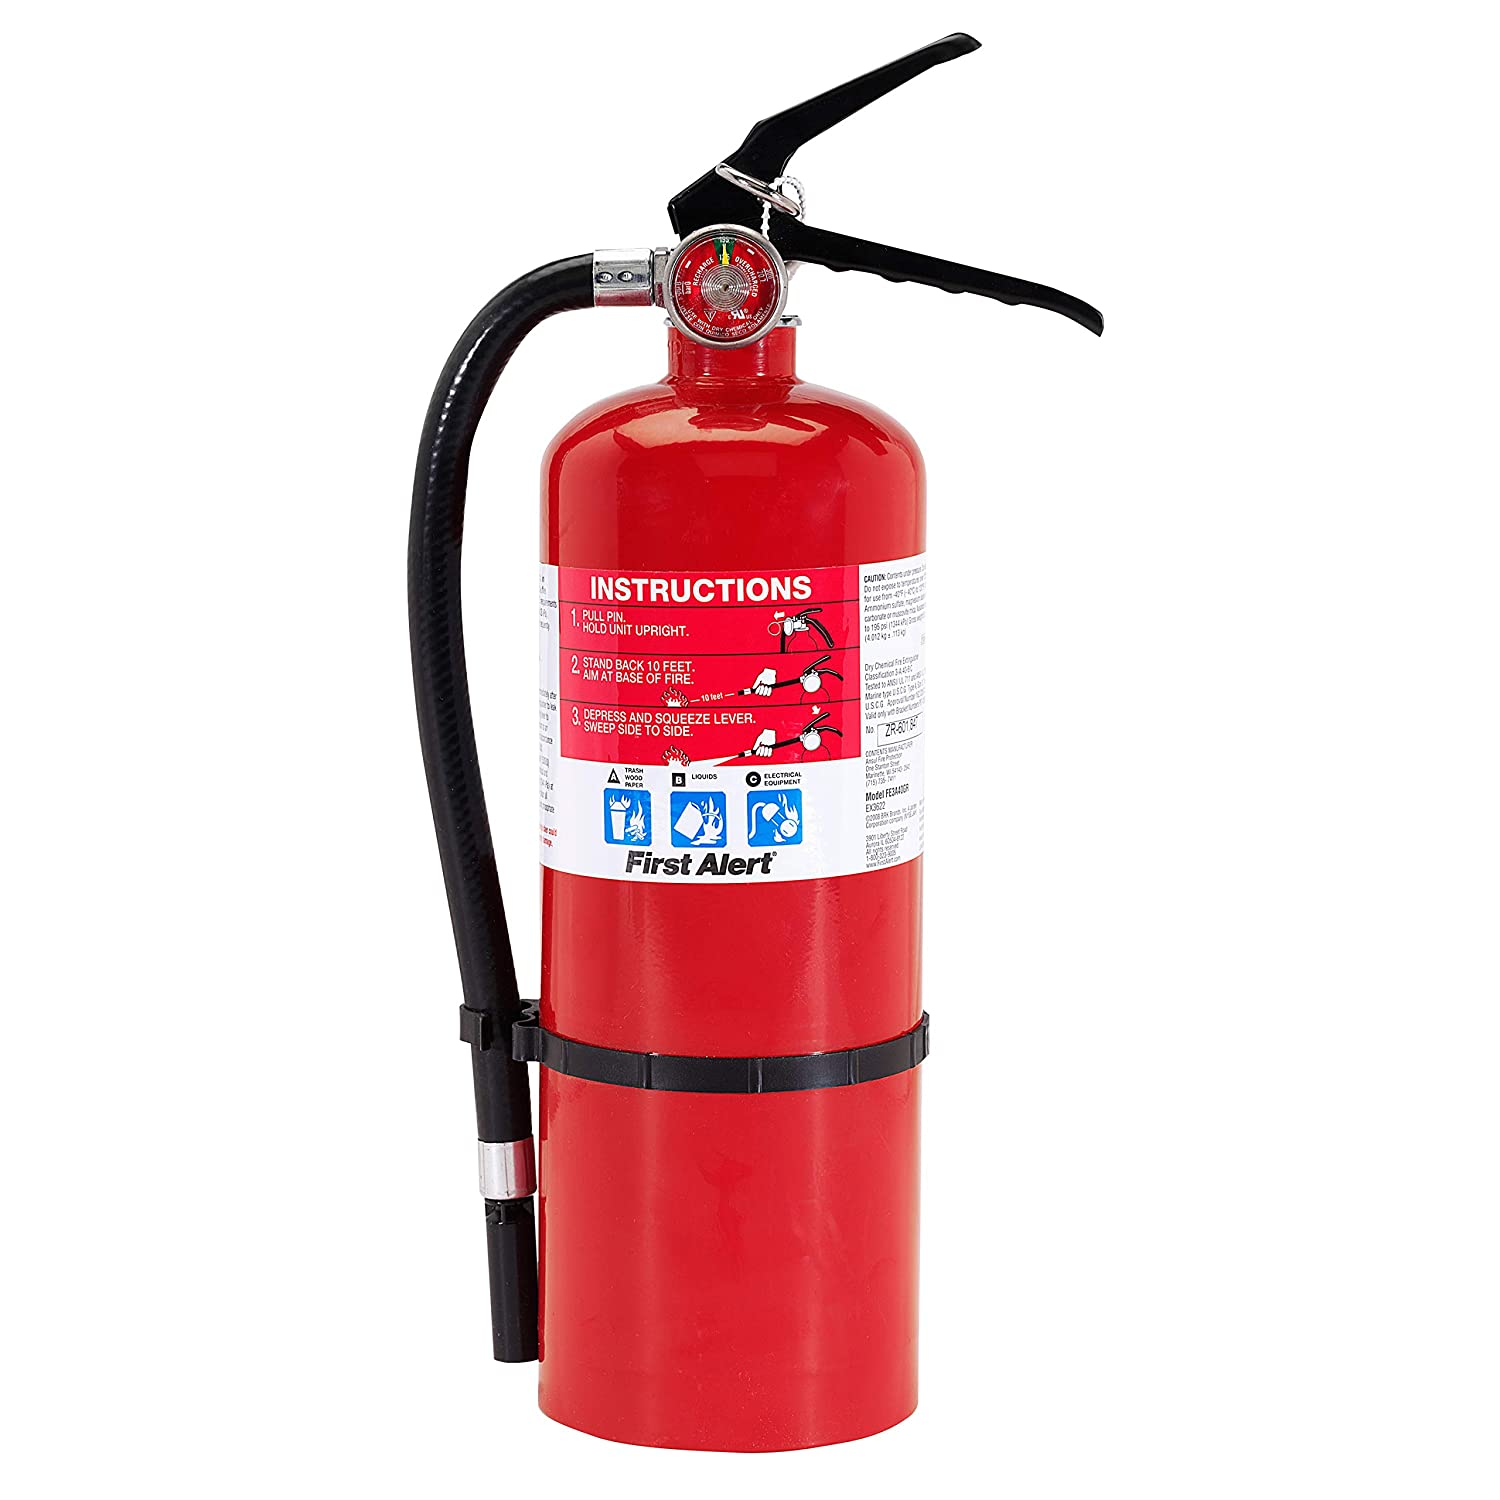 First Alert Fire Extinguisher Professional Fire Extinguisher, Red, 5 lb, PRO5